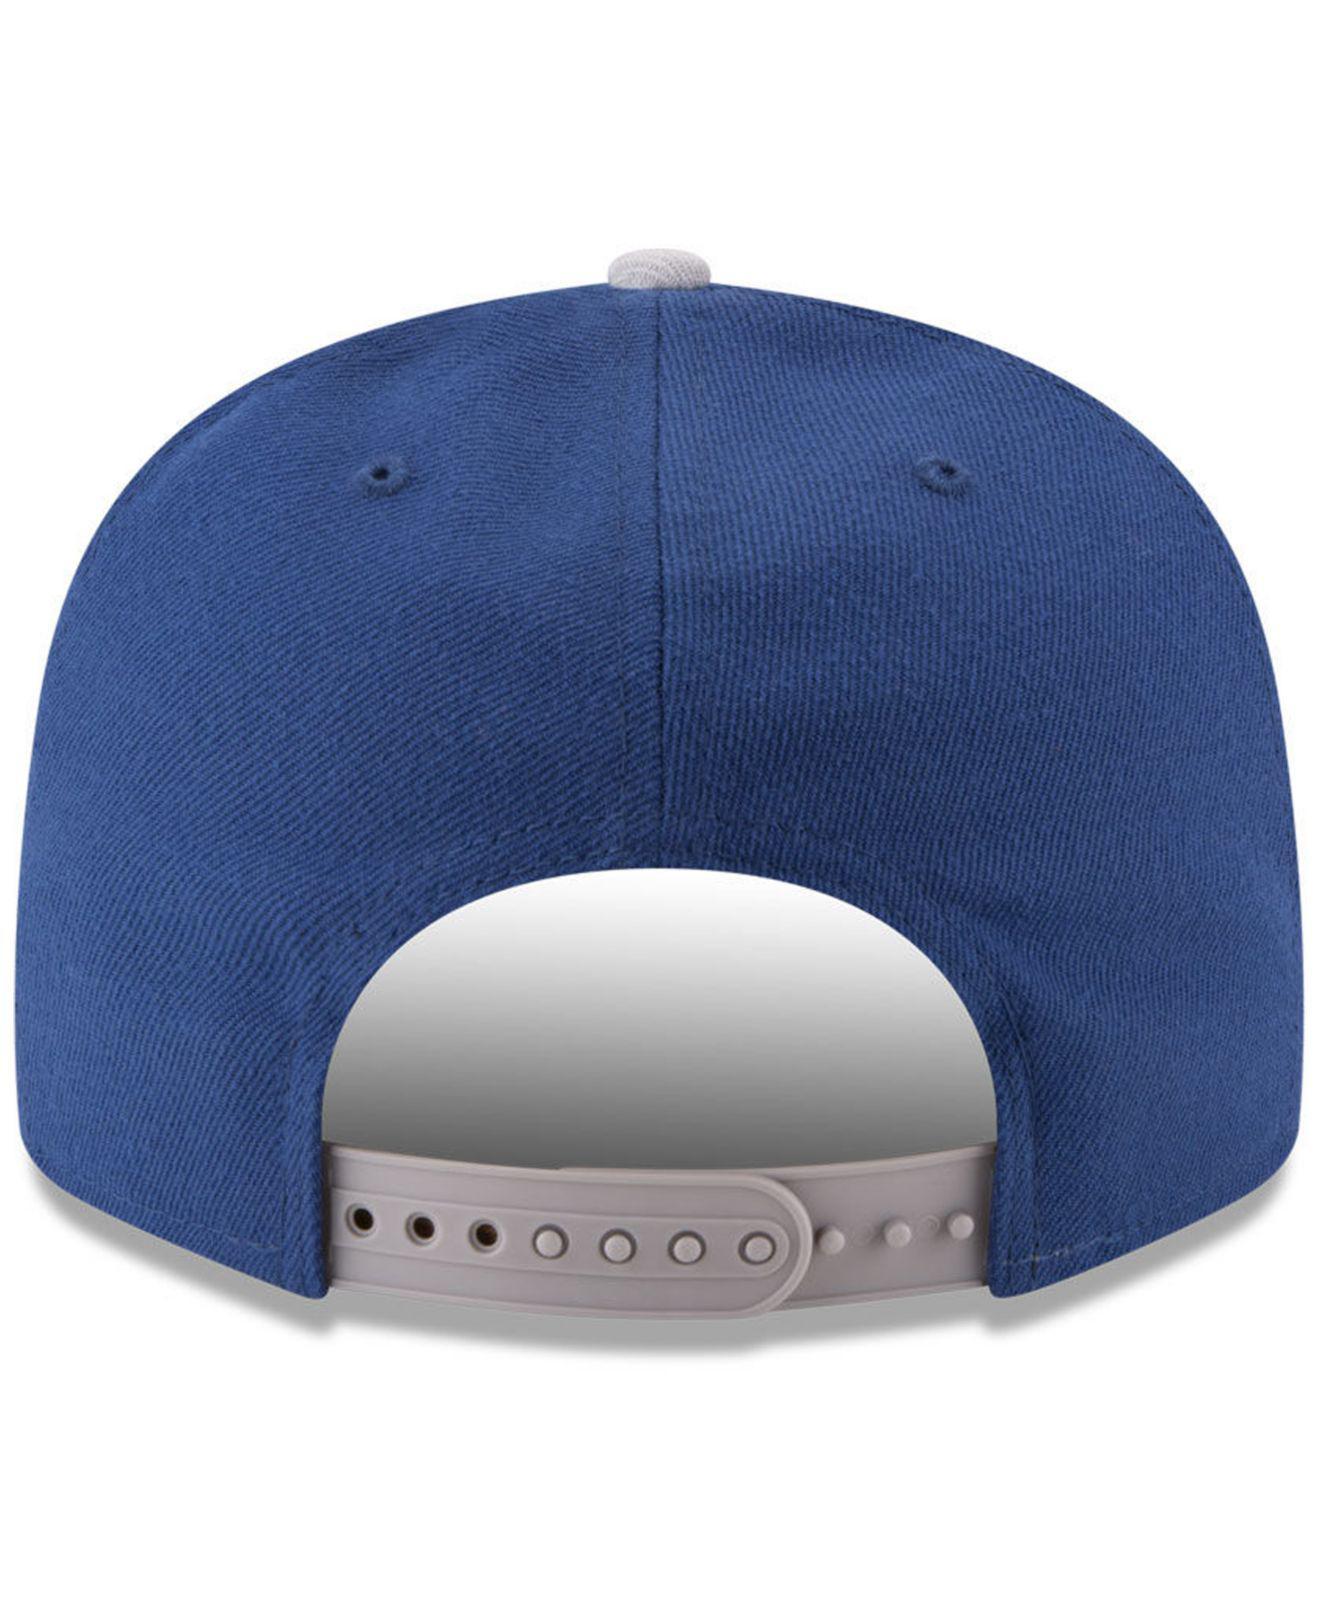 Lyst - KTZ Indianapolis Colts Retro Logo 9fifty Snapback Cap in Blue ... be516c073